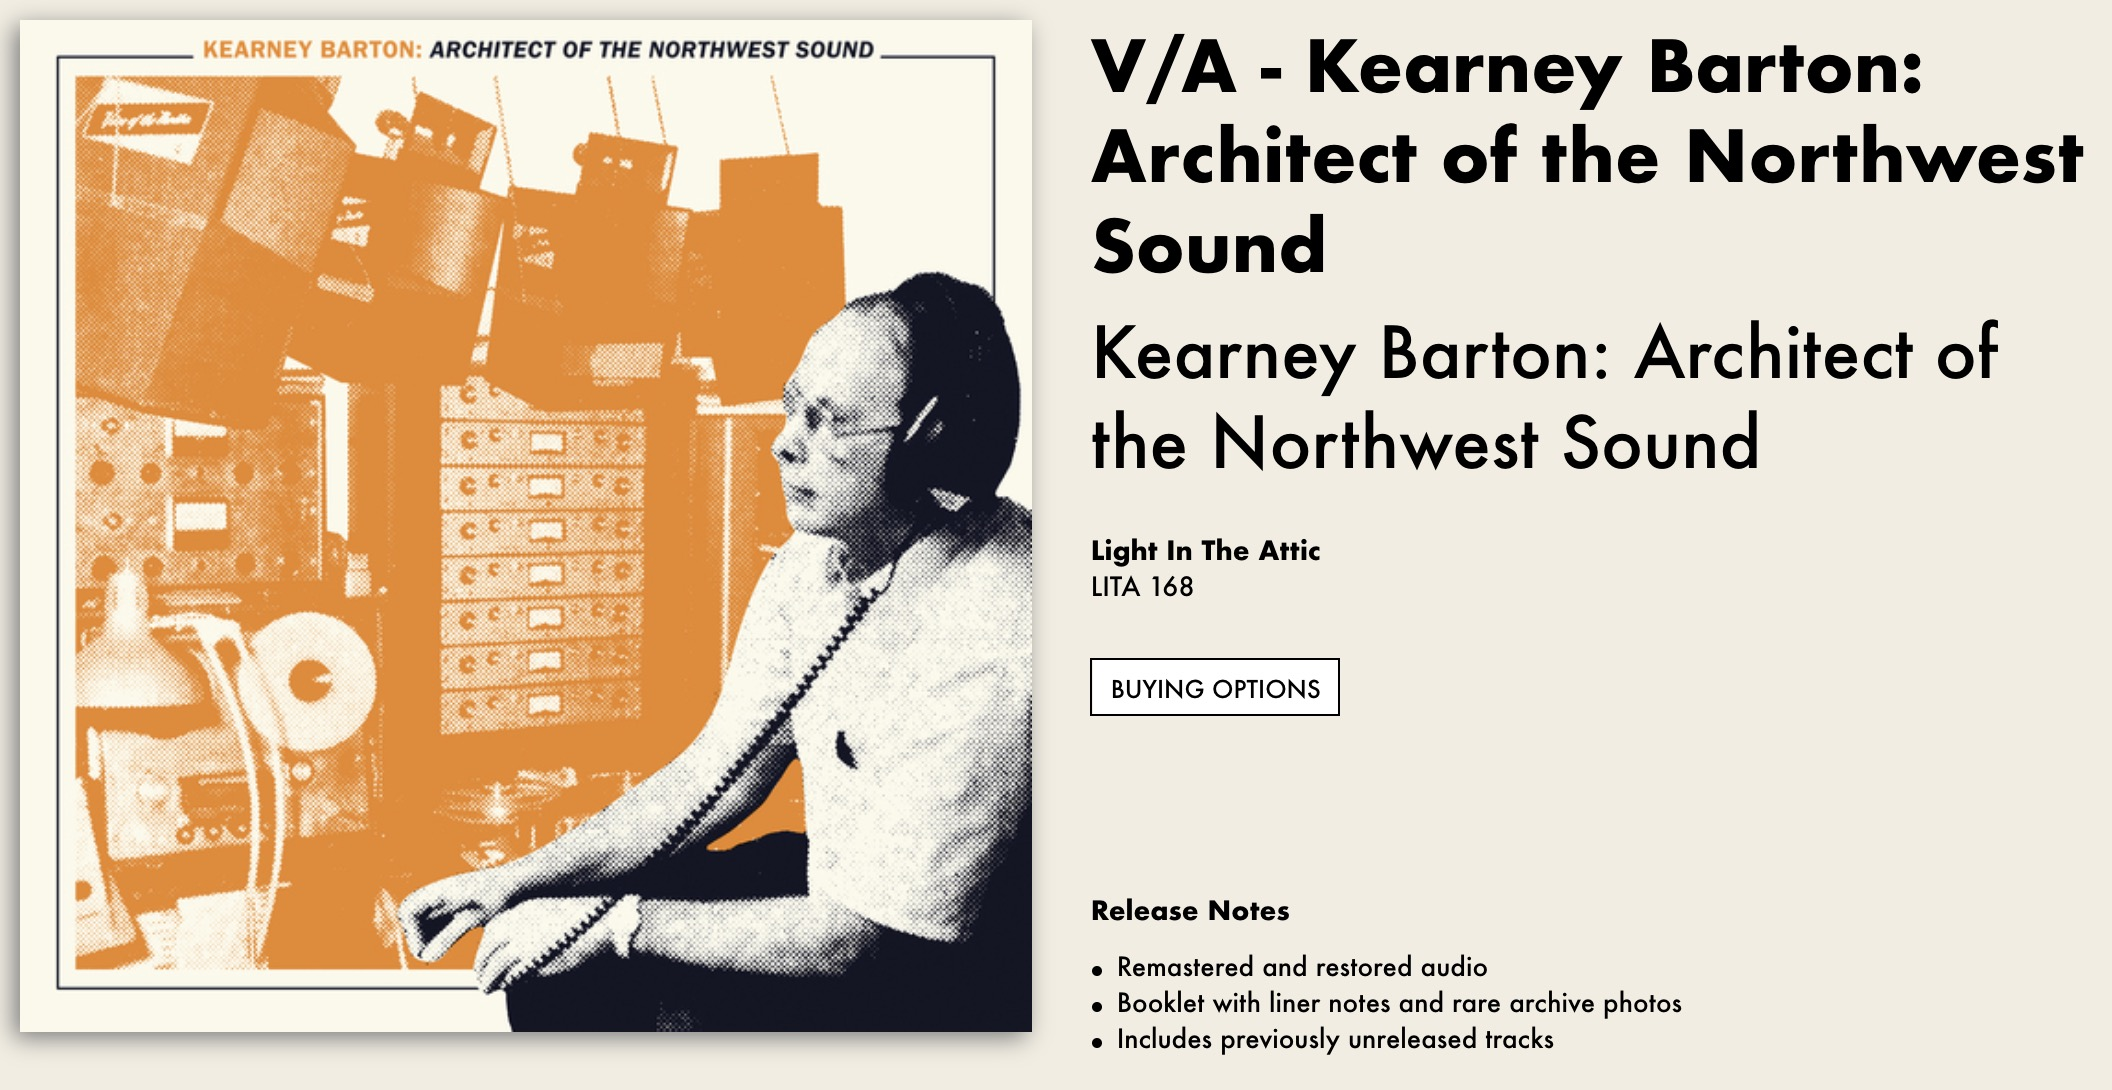 Record cover for the LP Architect of the Northwest Sound by Kearney Barton